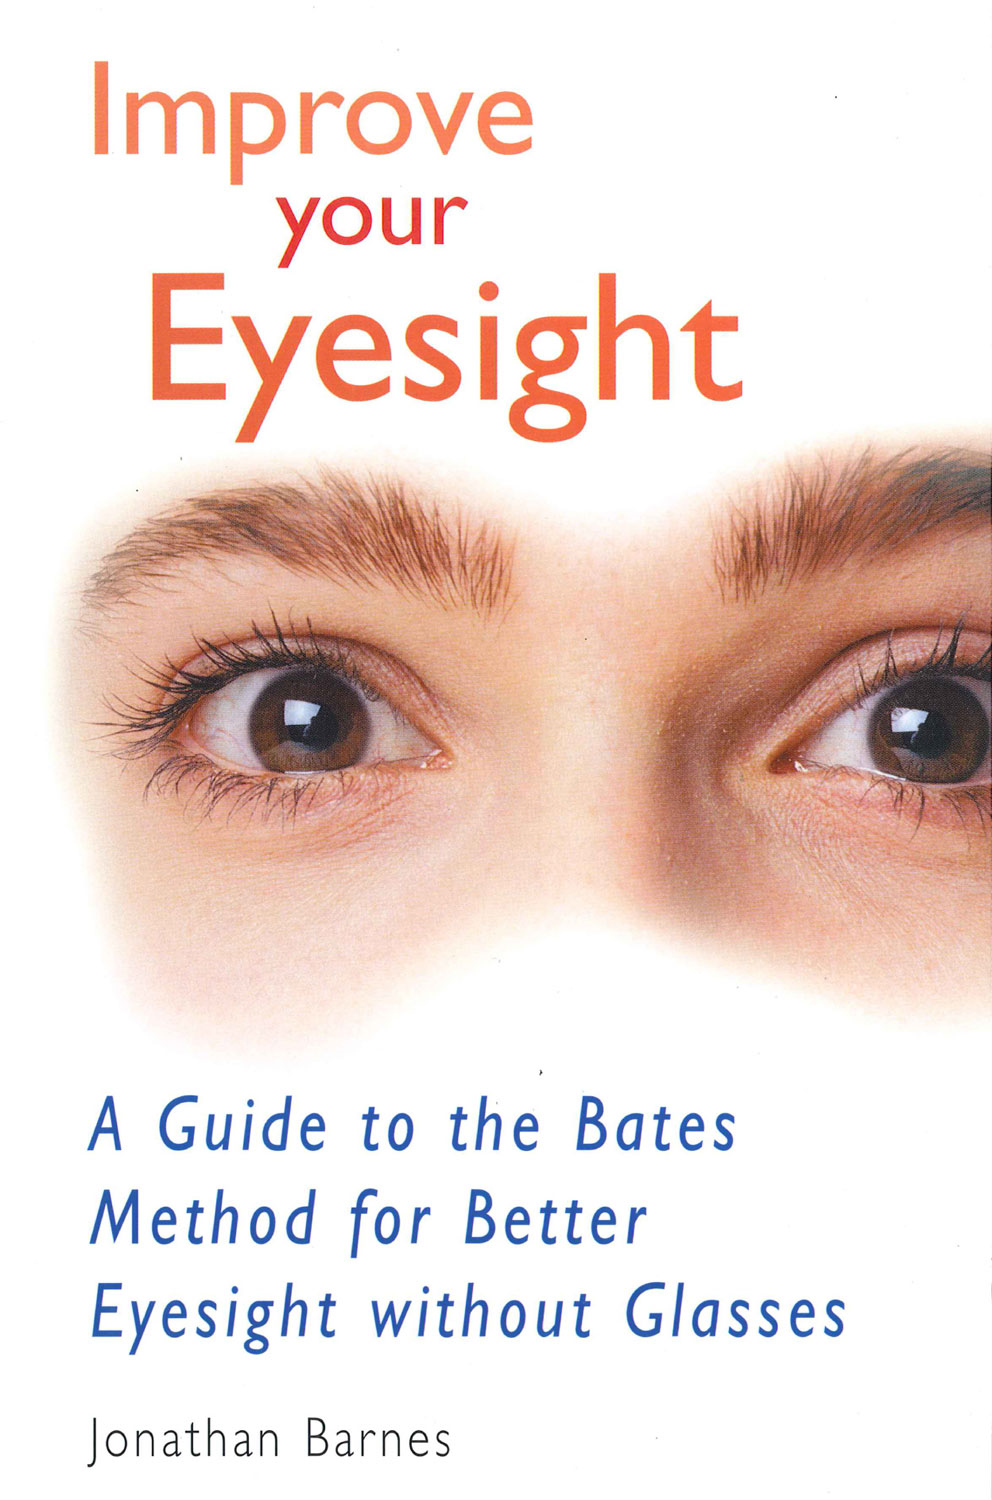 Improve Your Eyesight: A Guide to the Bates Method for Better Eyesight Without Glasses By: Jonathan Barnes